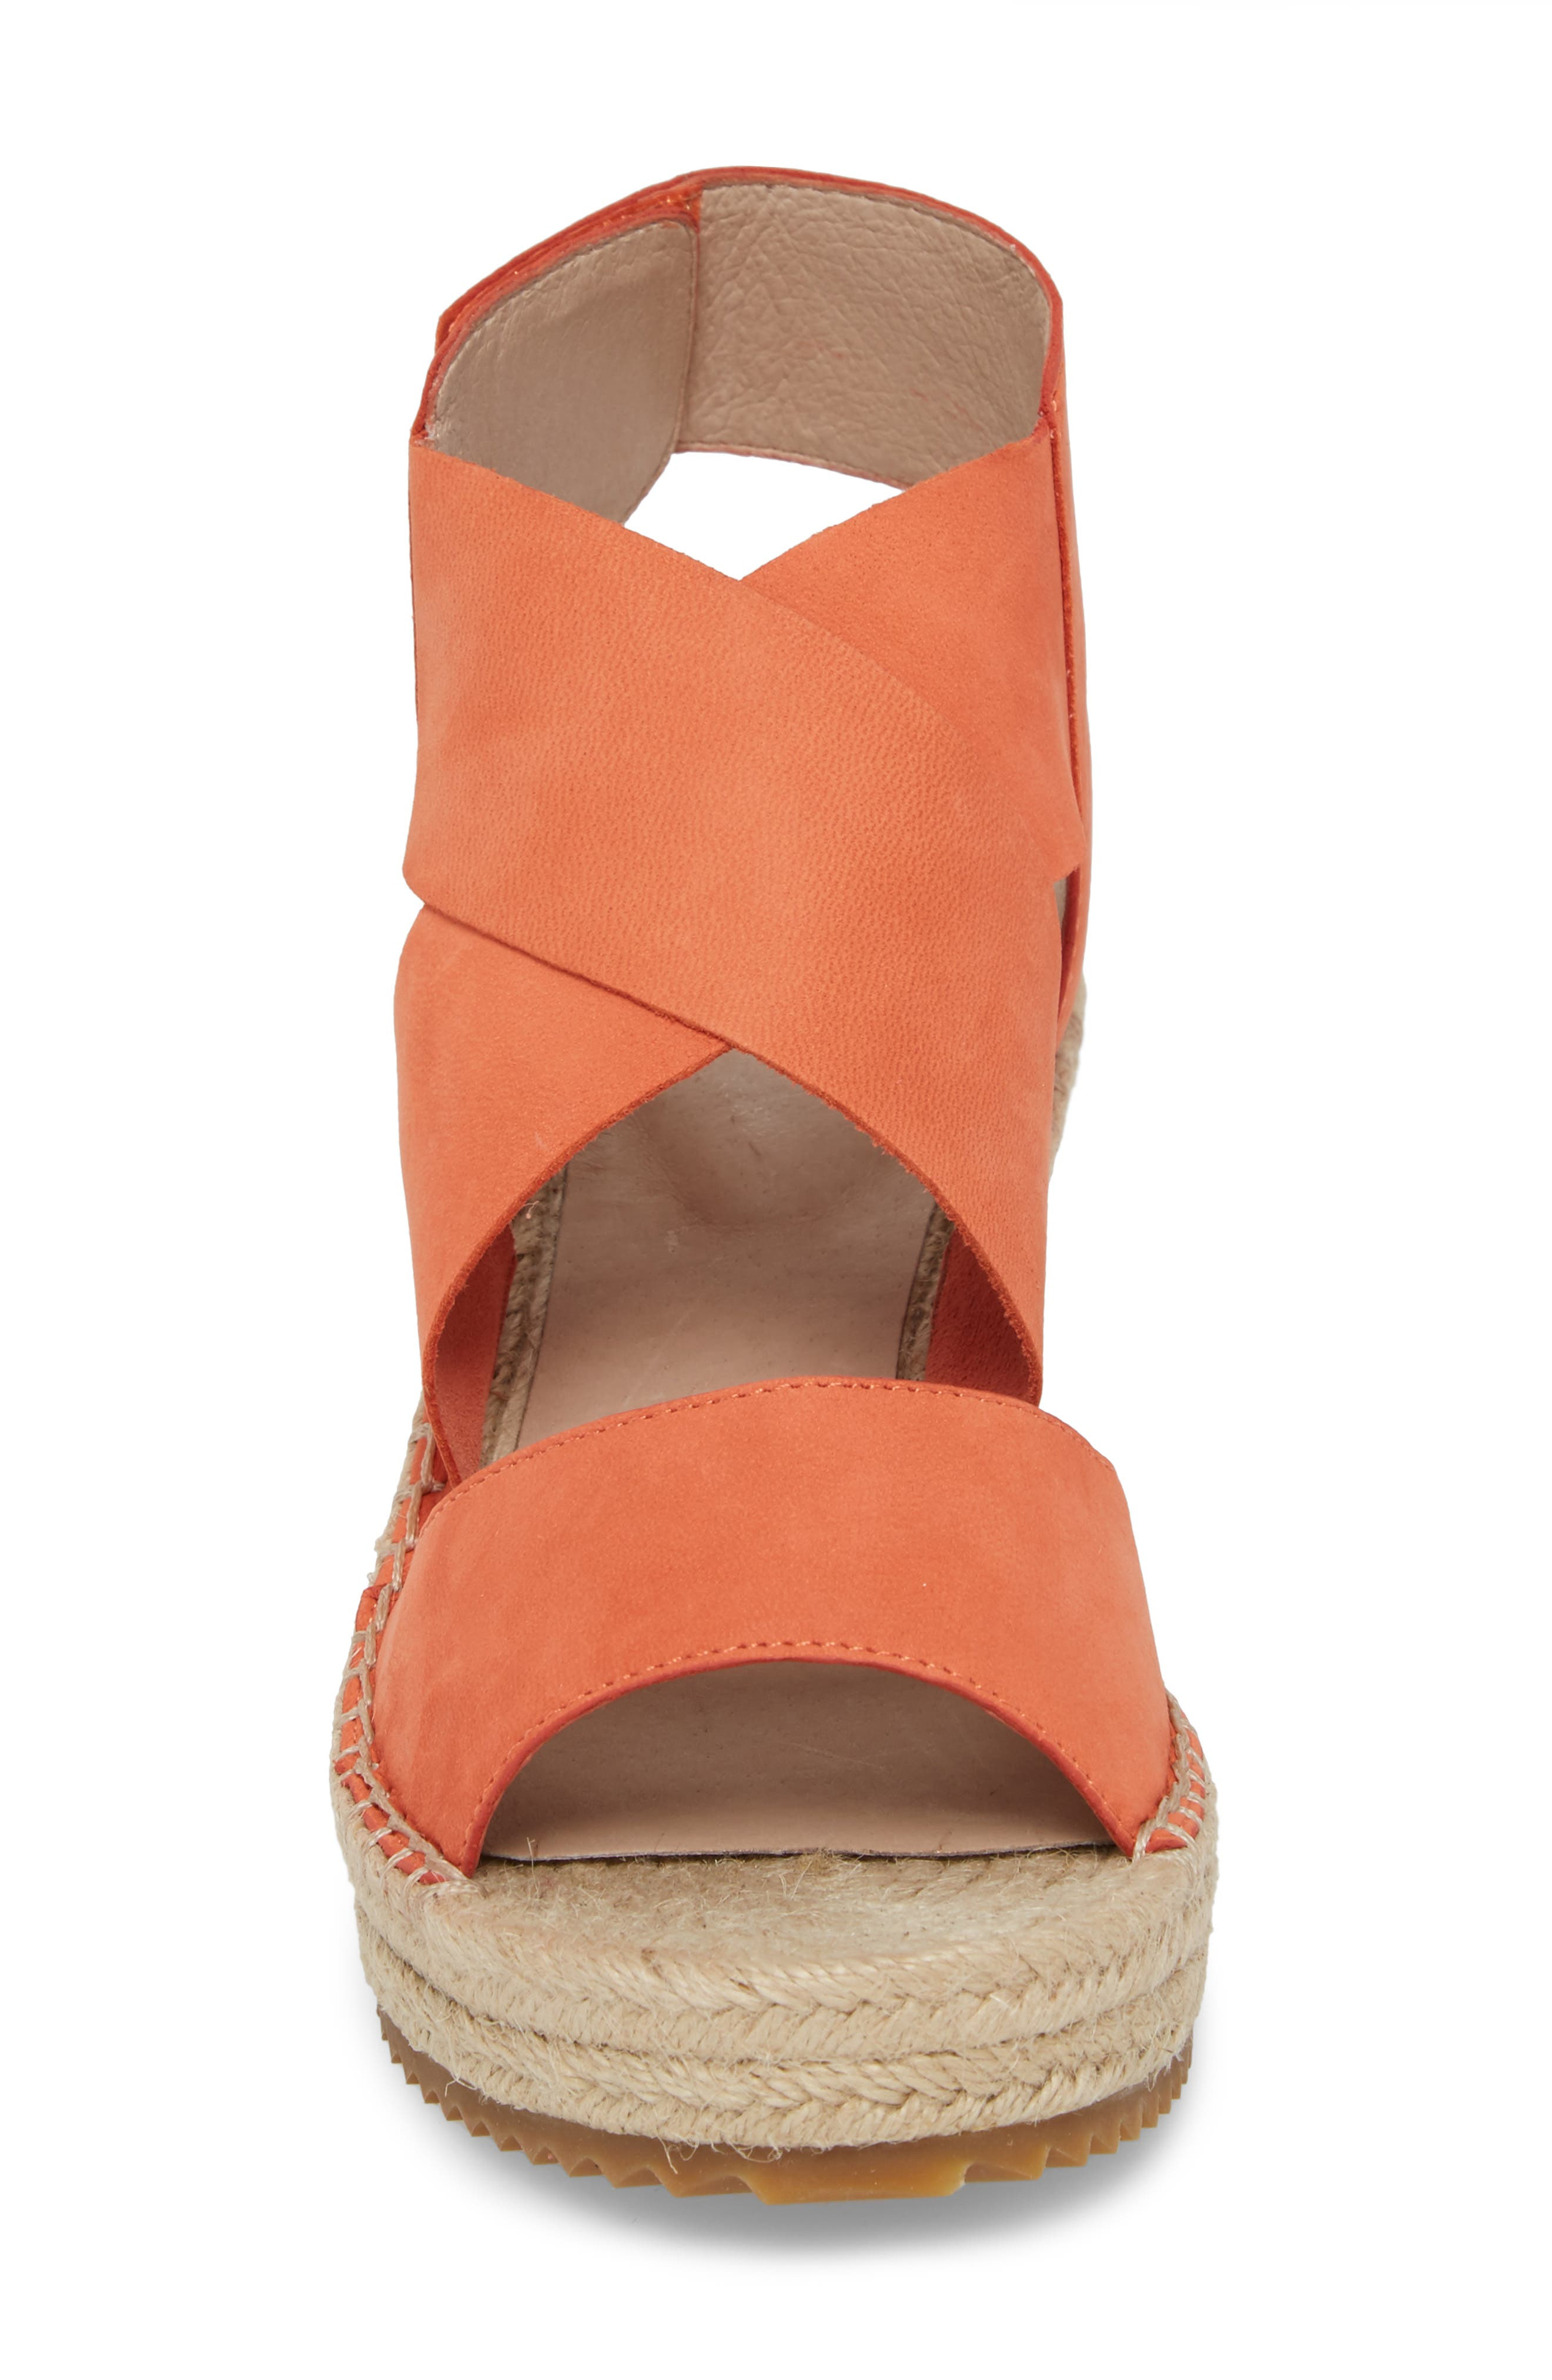 'Willow' Espadrille Wedge Sandal,                             Alternate thumbnail 4, color,                             Persimmon Leather